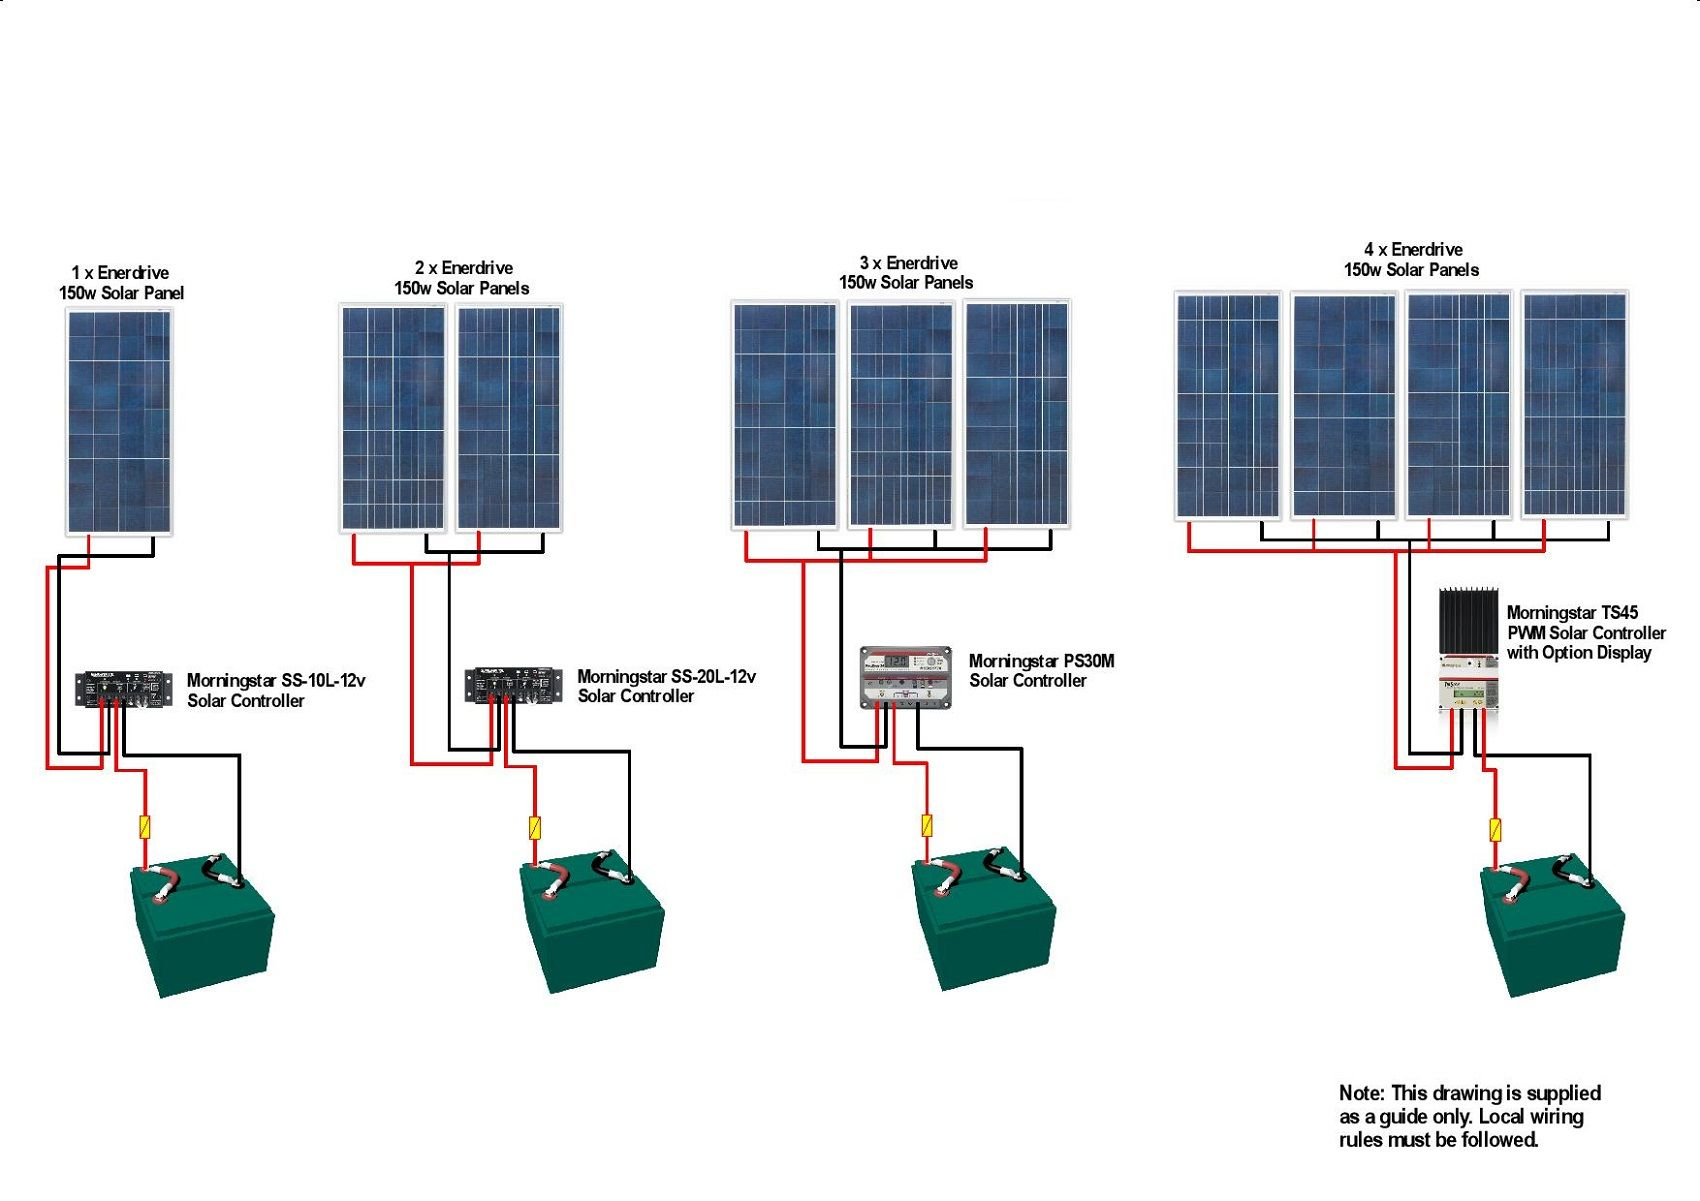 medium resolution of bp solar panels wiring diagram solar panel diagrams to print hq solar panel wiring diagram 24 volt solar panels wiring diagram 3